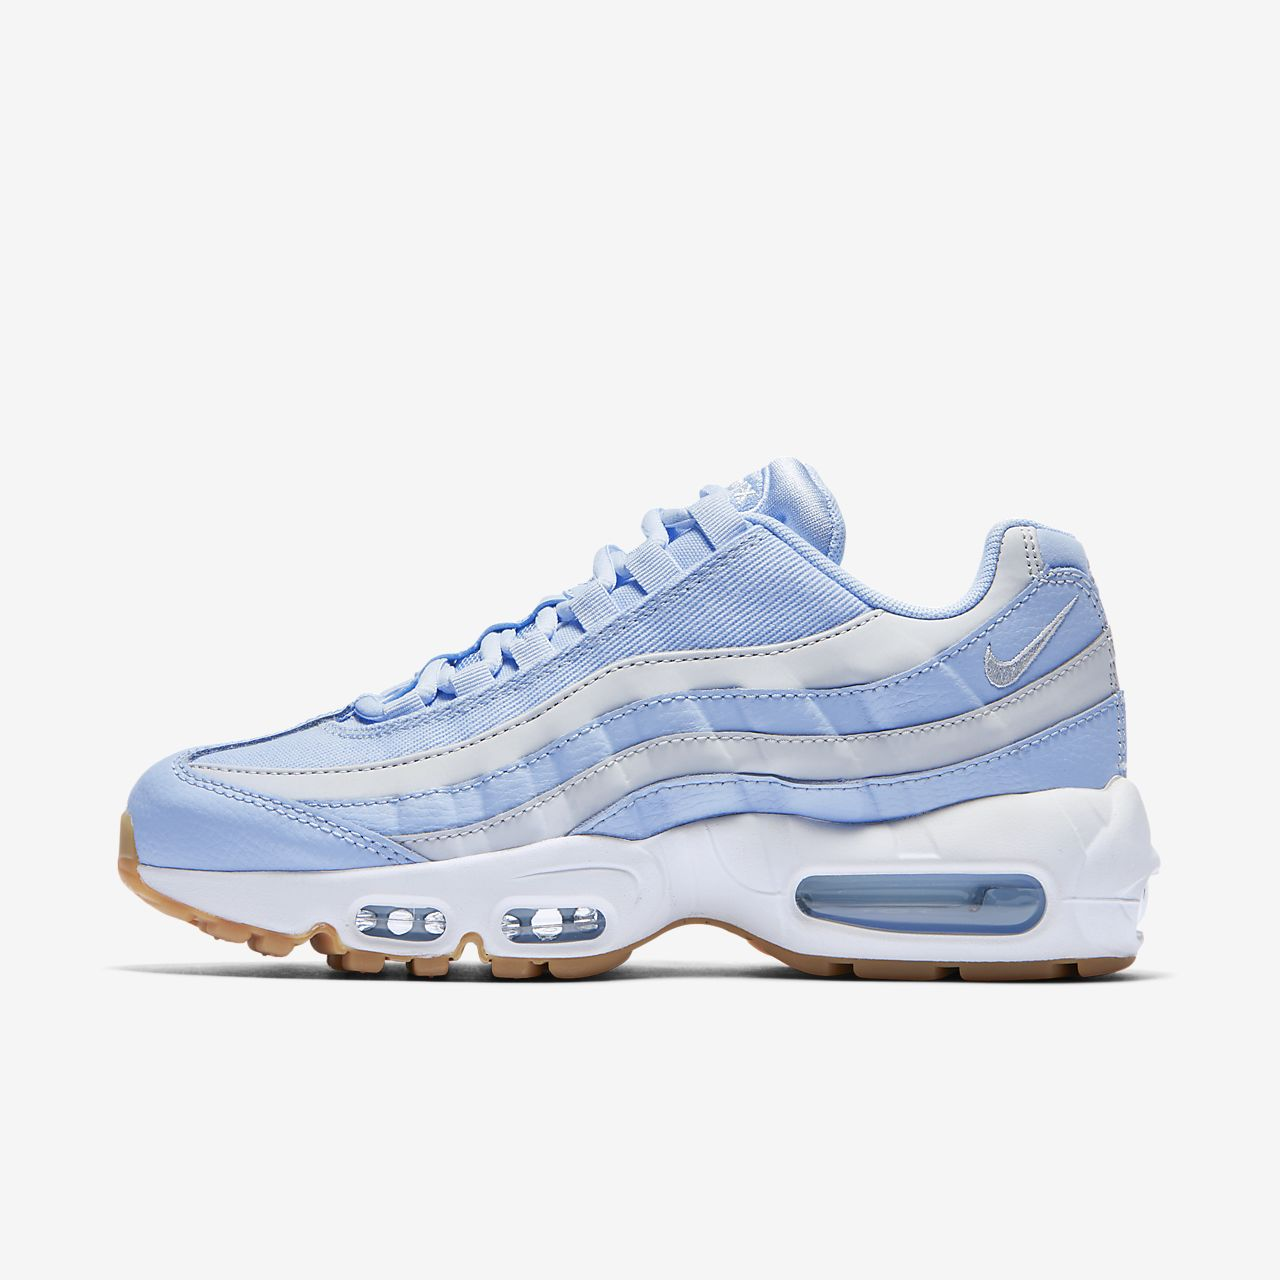 cheapest nike air max 95 cuir bleu marron 9582c caf08